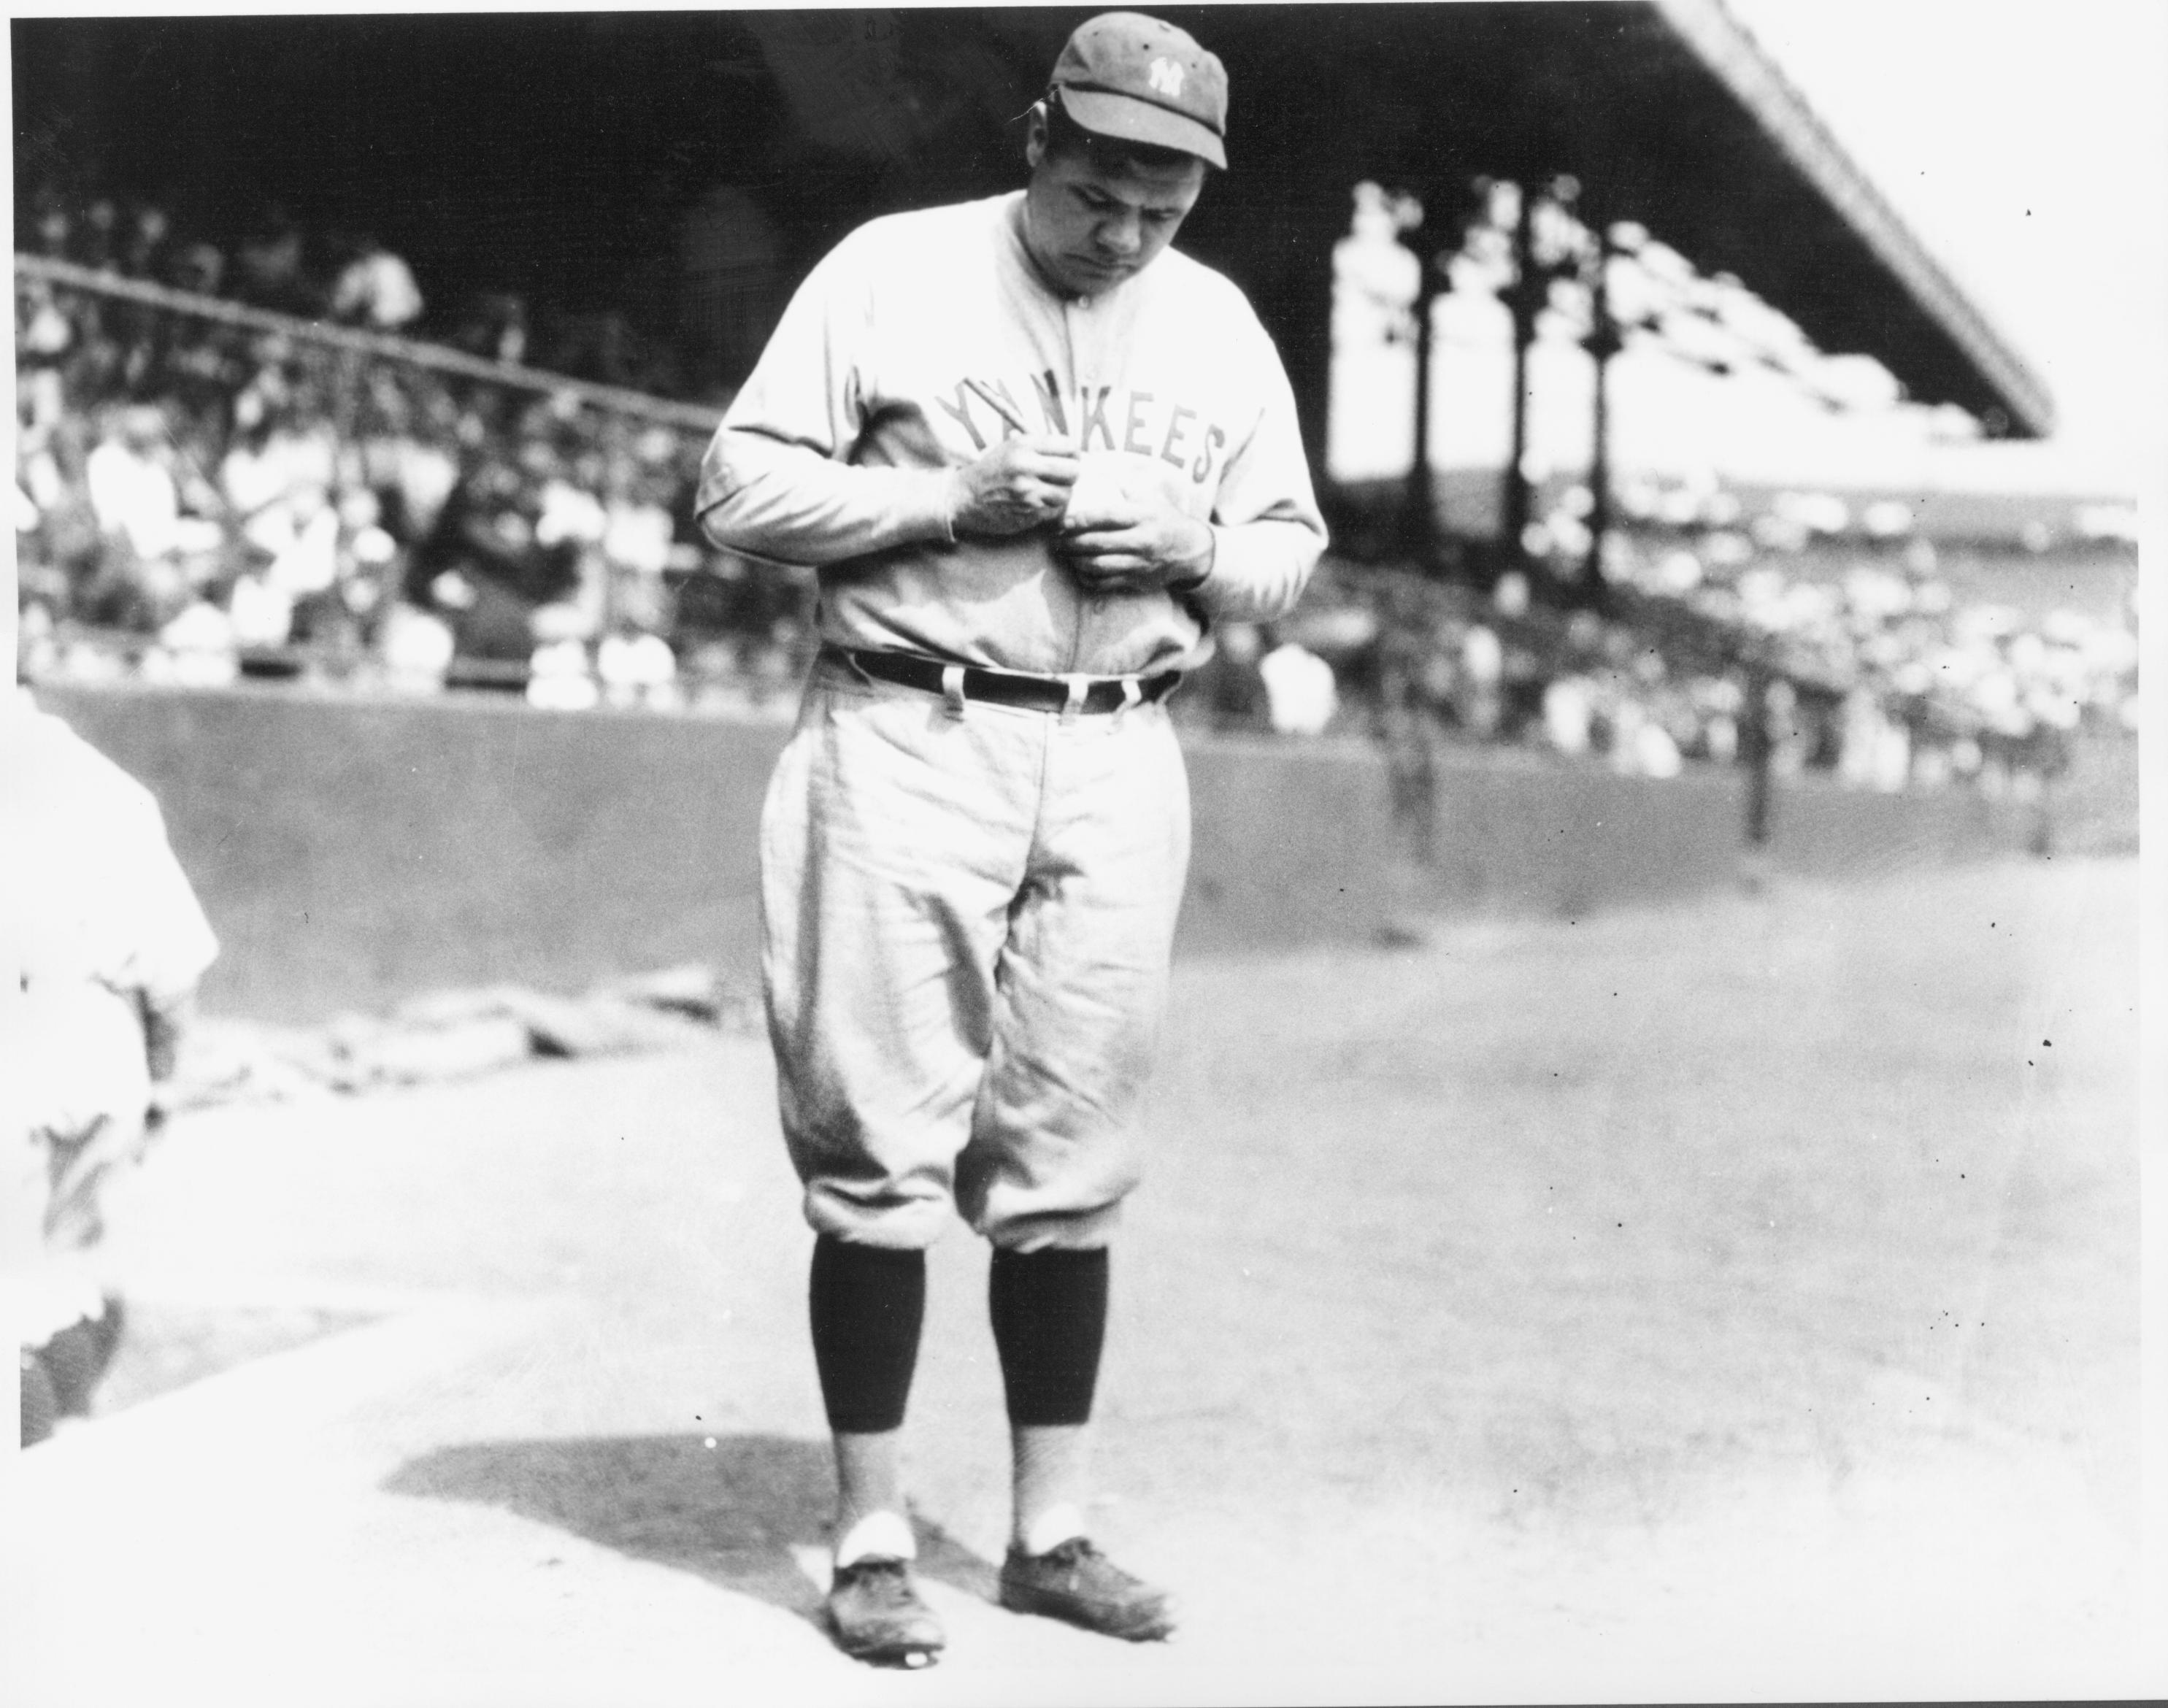 quality design dfb8f 16d85 Game-worn Babe Ruth jersey sells for record $5.64 million at ...